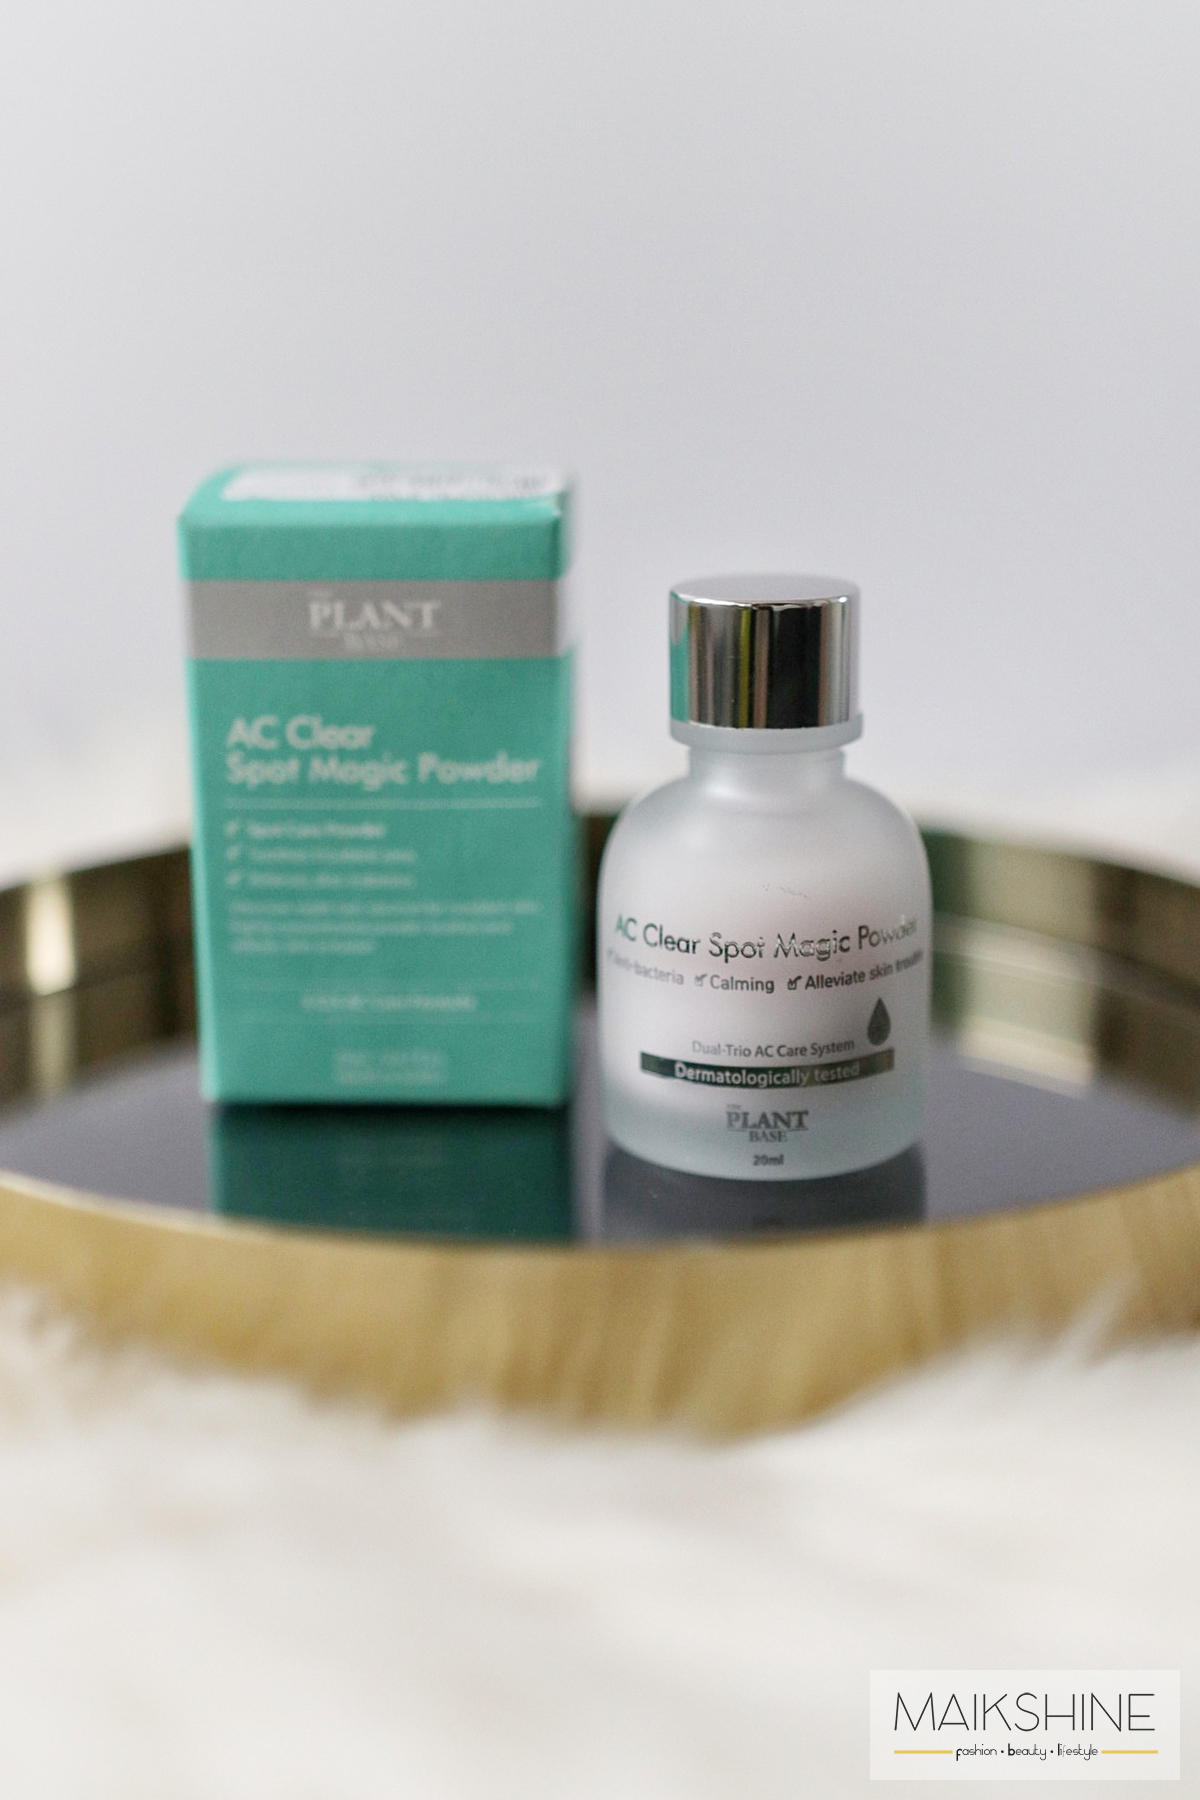 AC CLEAR SPOT MAGIC POWDER de THE PLANT BASE